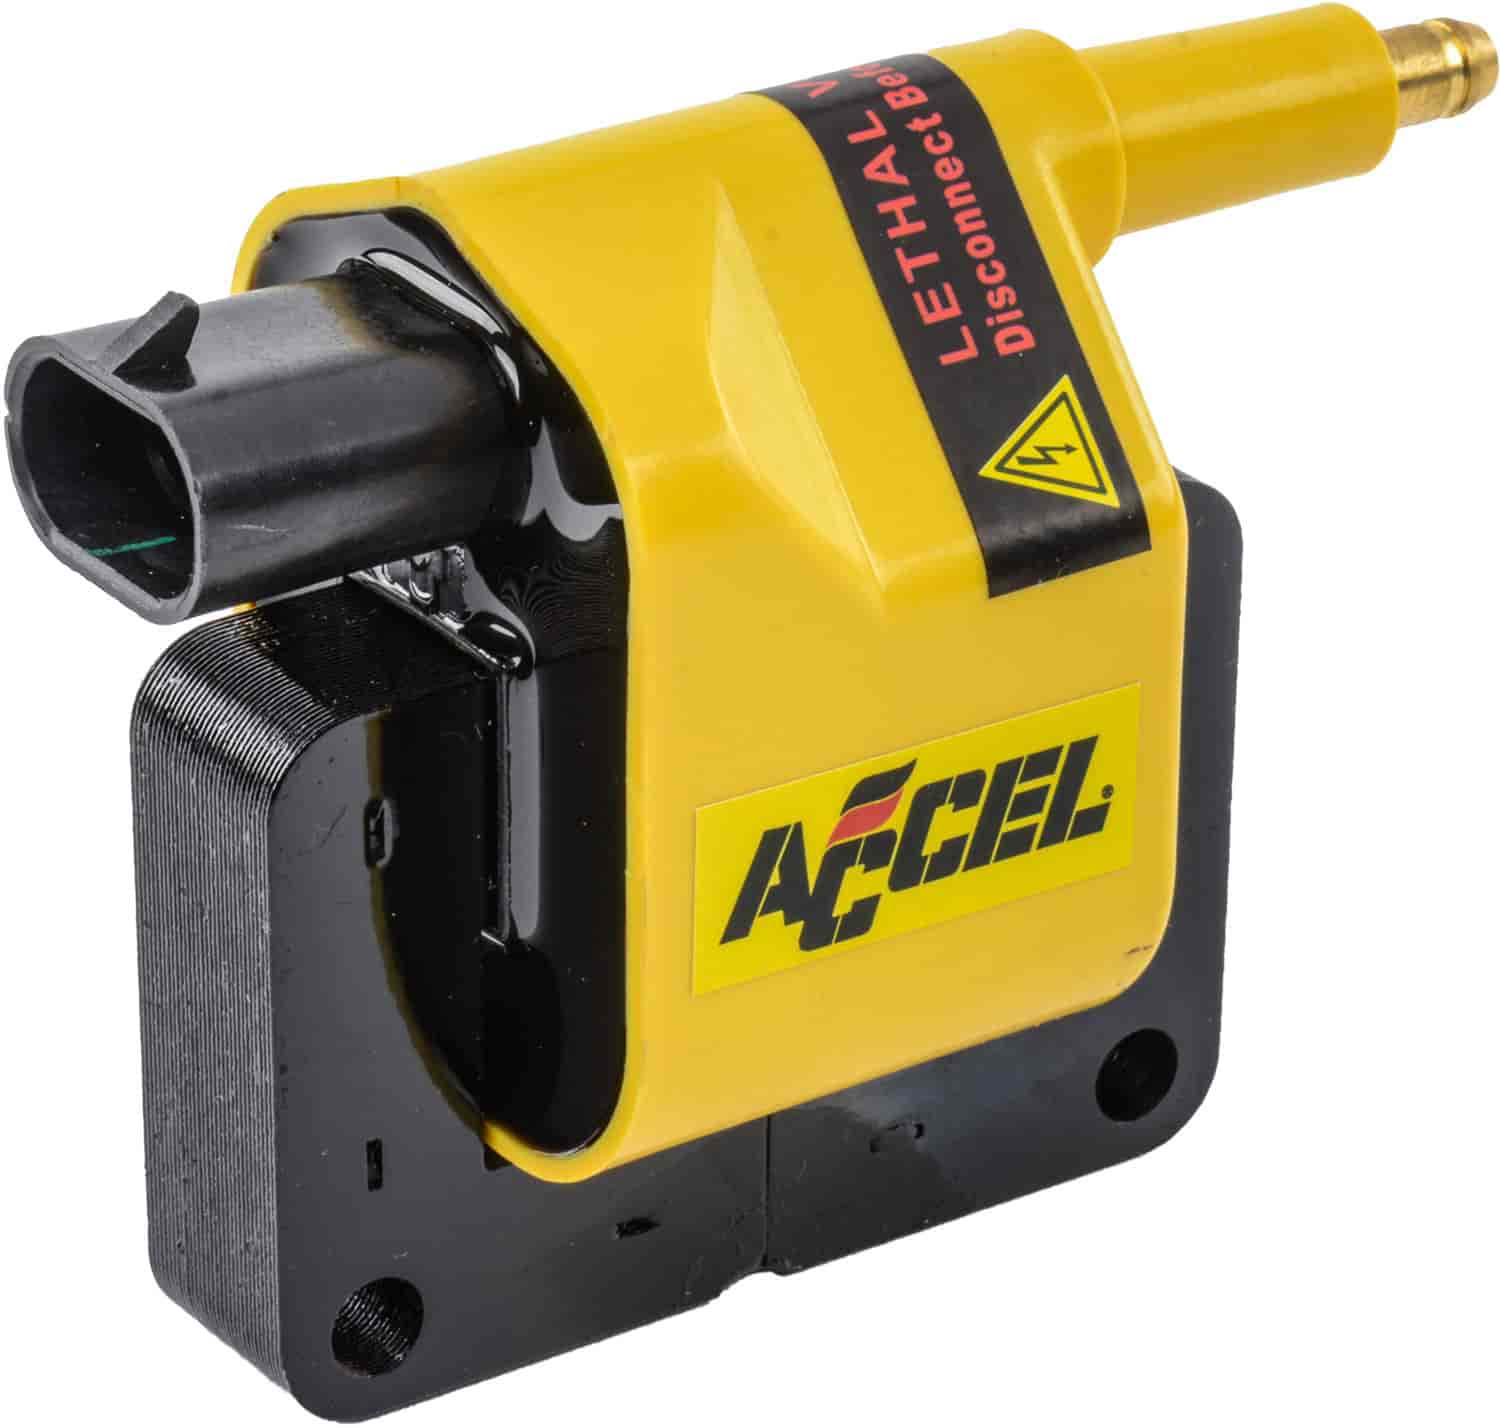 Accel 140021 - Accel Dodge Magnum Super Coil Ignition Coil for 1990-97 Dodge Truck & Jeep